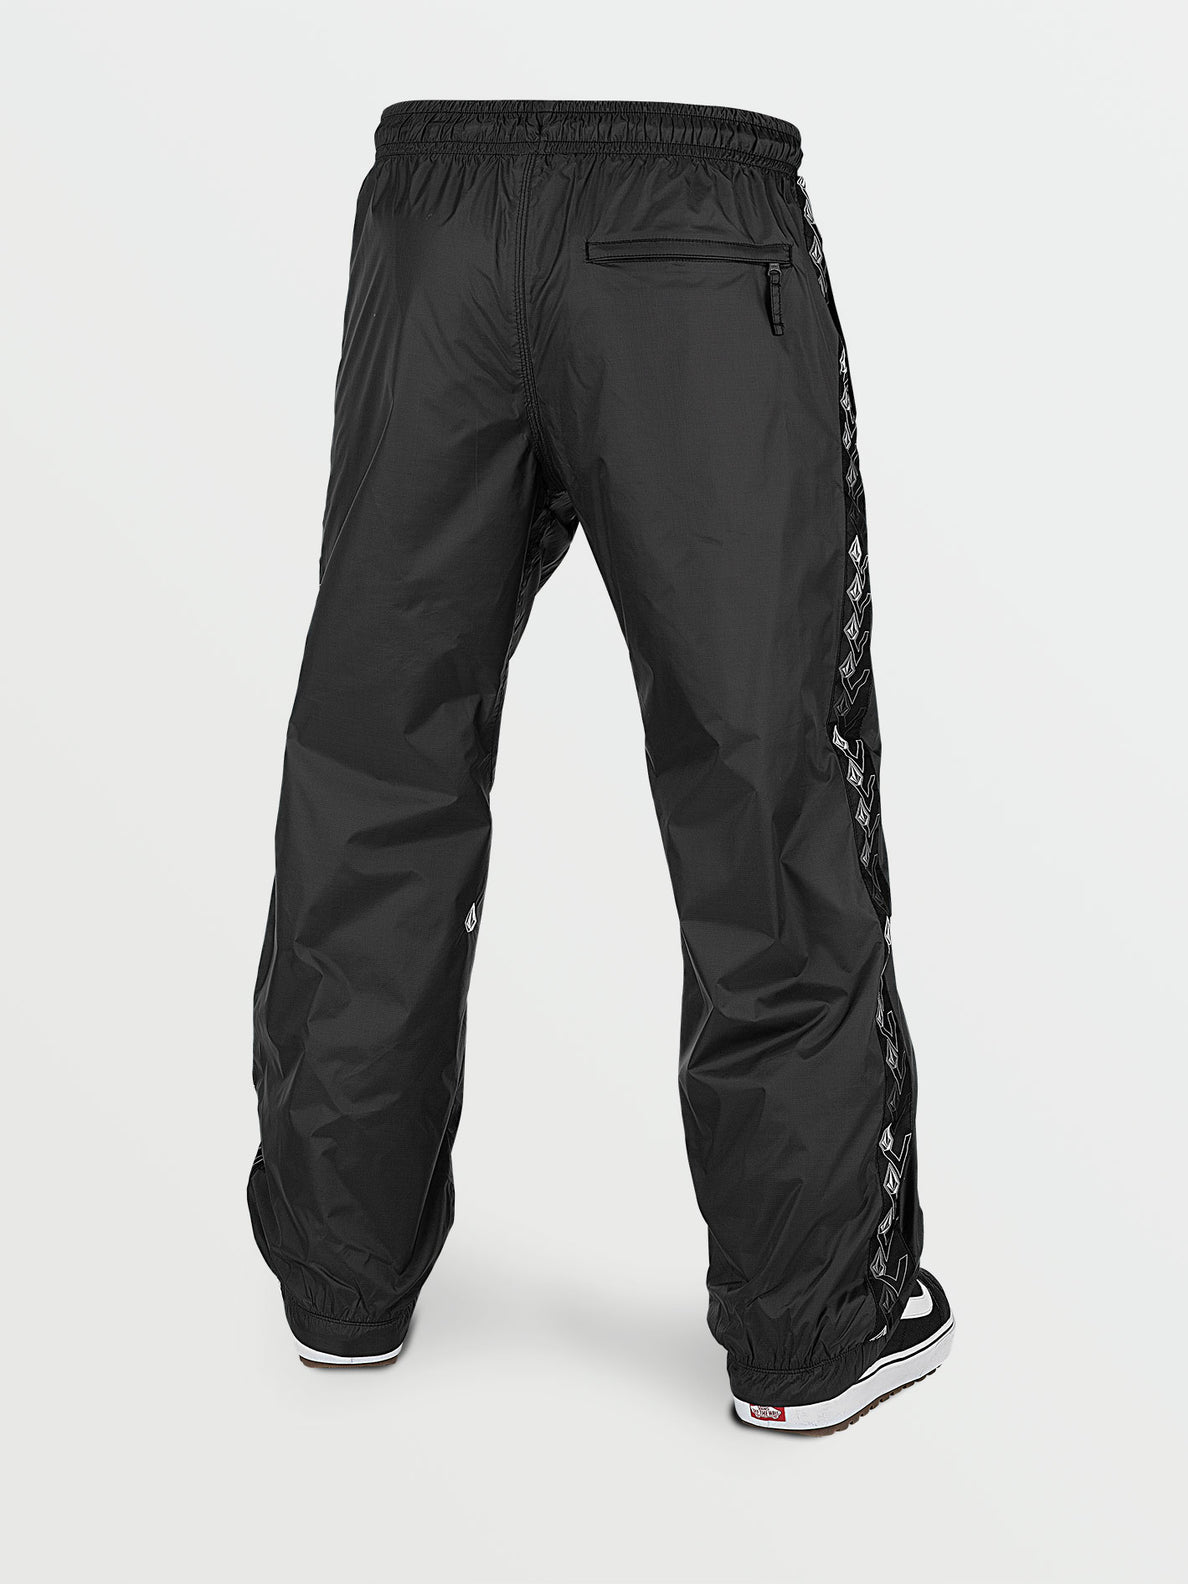 SLASHLAPPER PANT - BLACK (G1352110_BLK) [B]